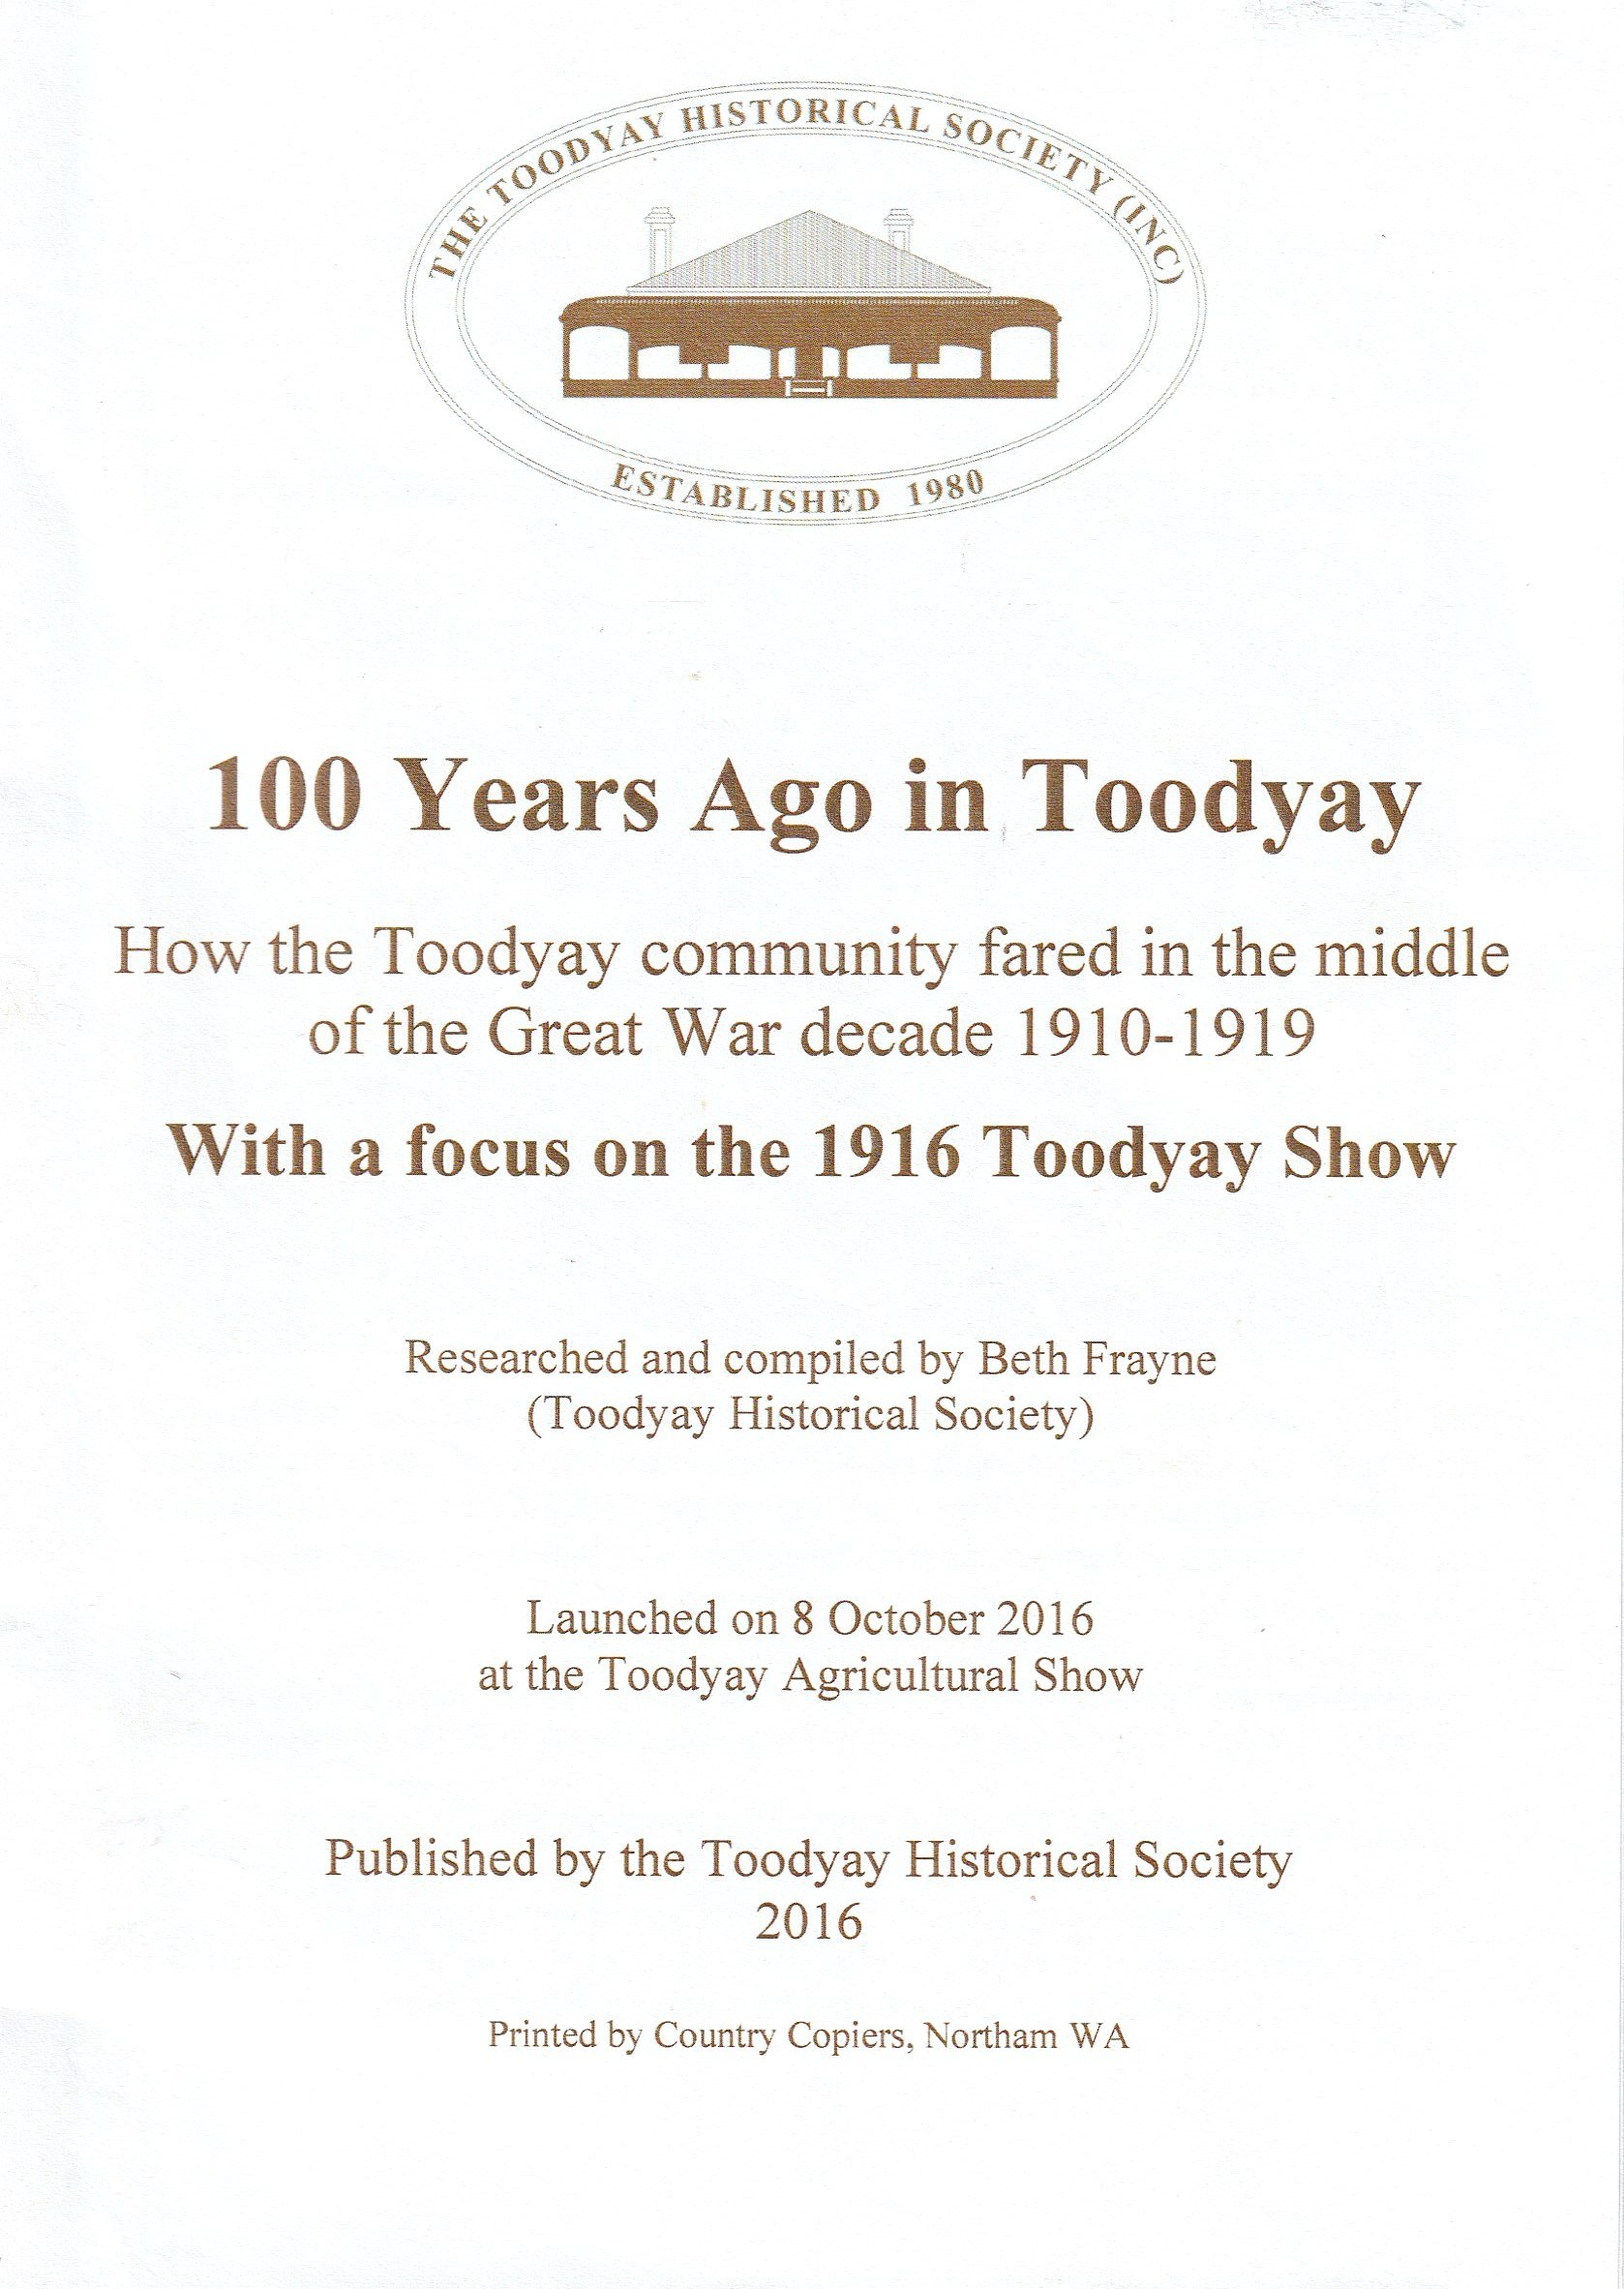 100 years ago in Toodyay: how the how the Toodyay community fared in the Great War decade 1910-1919, with a focus on the 1916 Toodyay Show